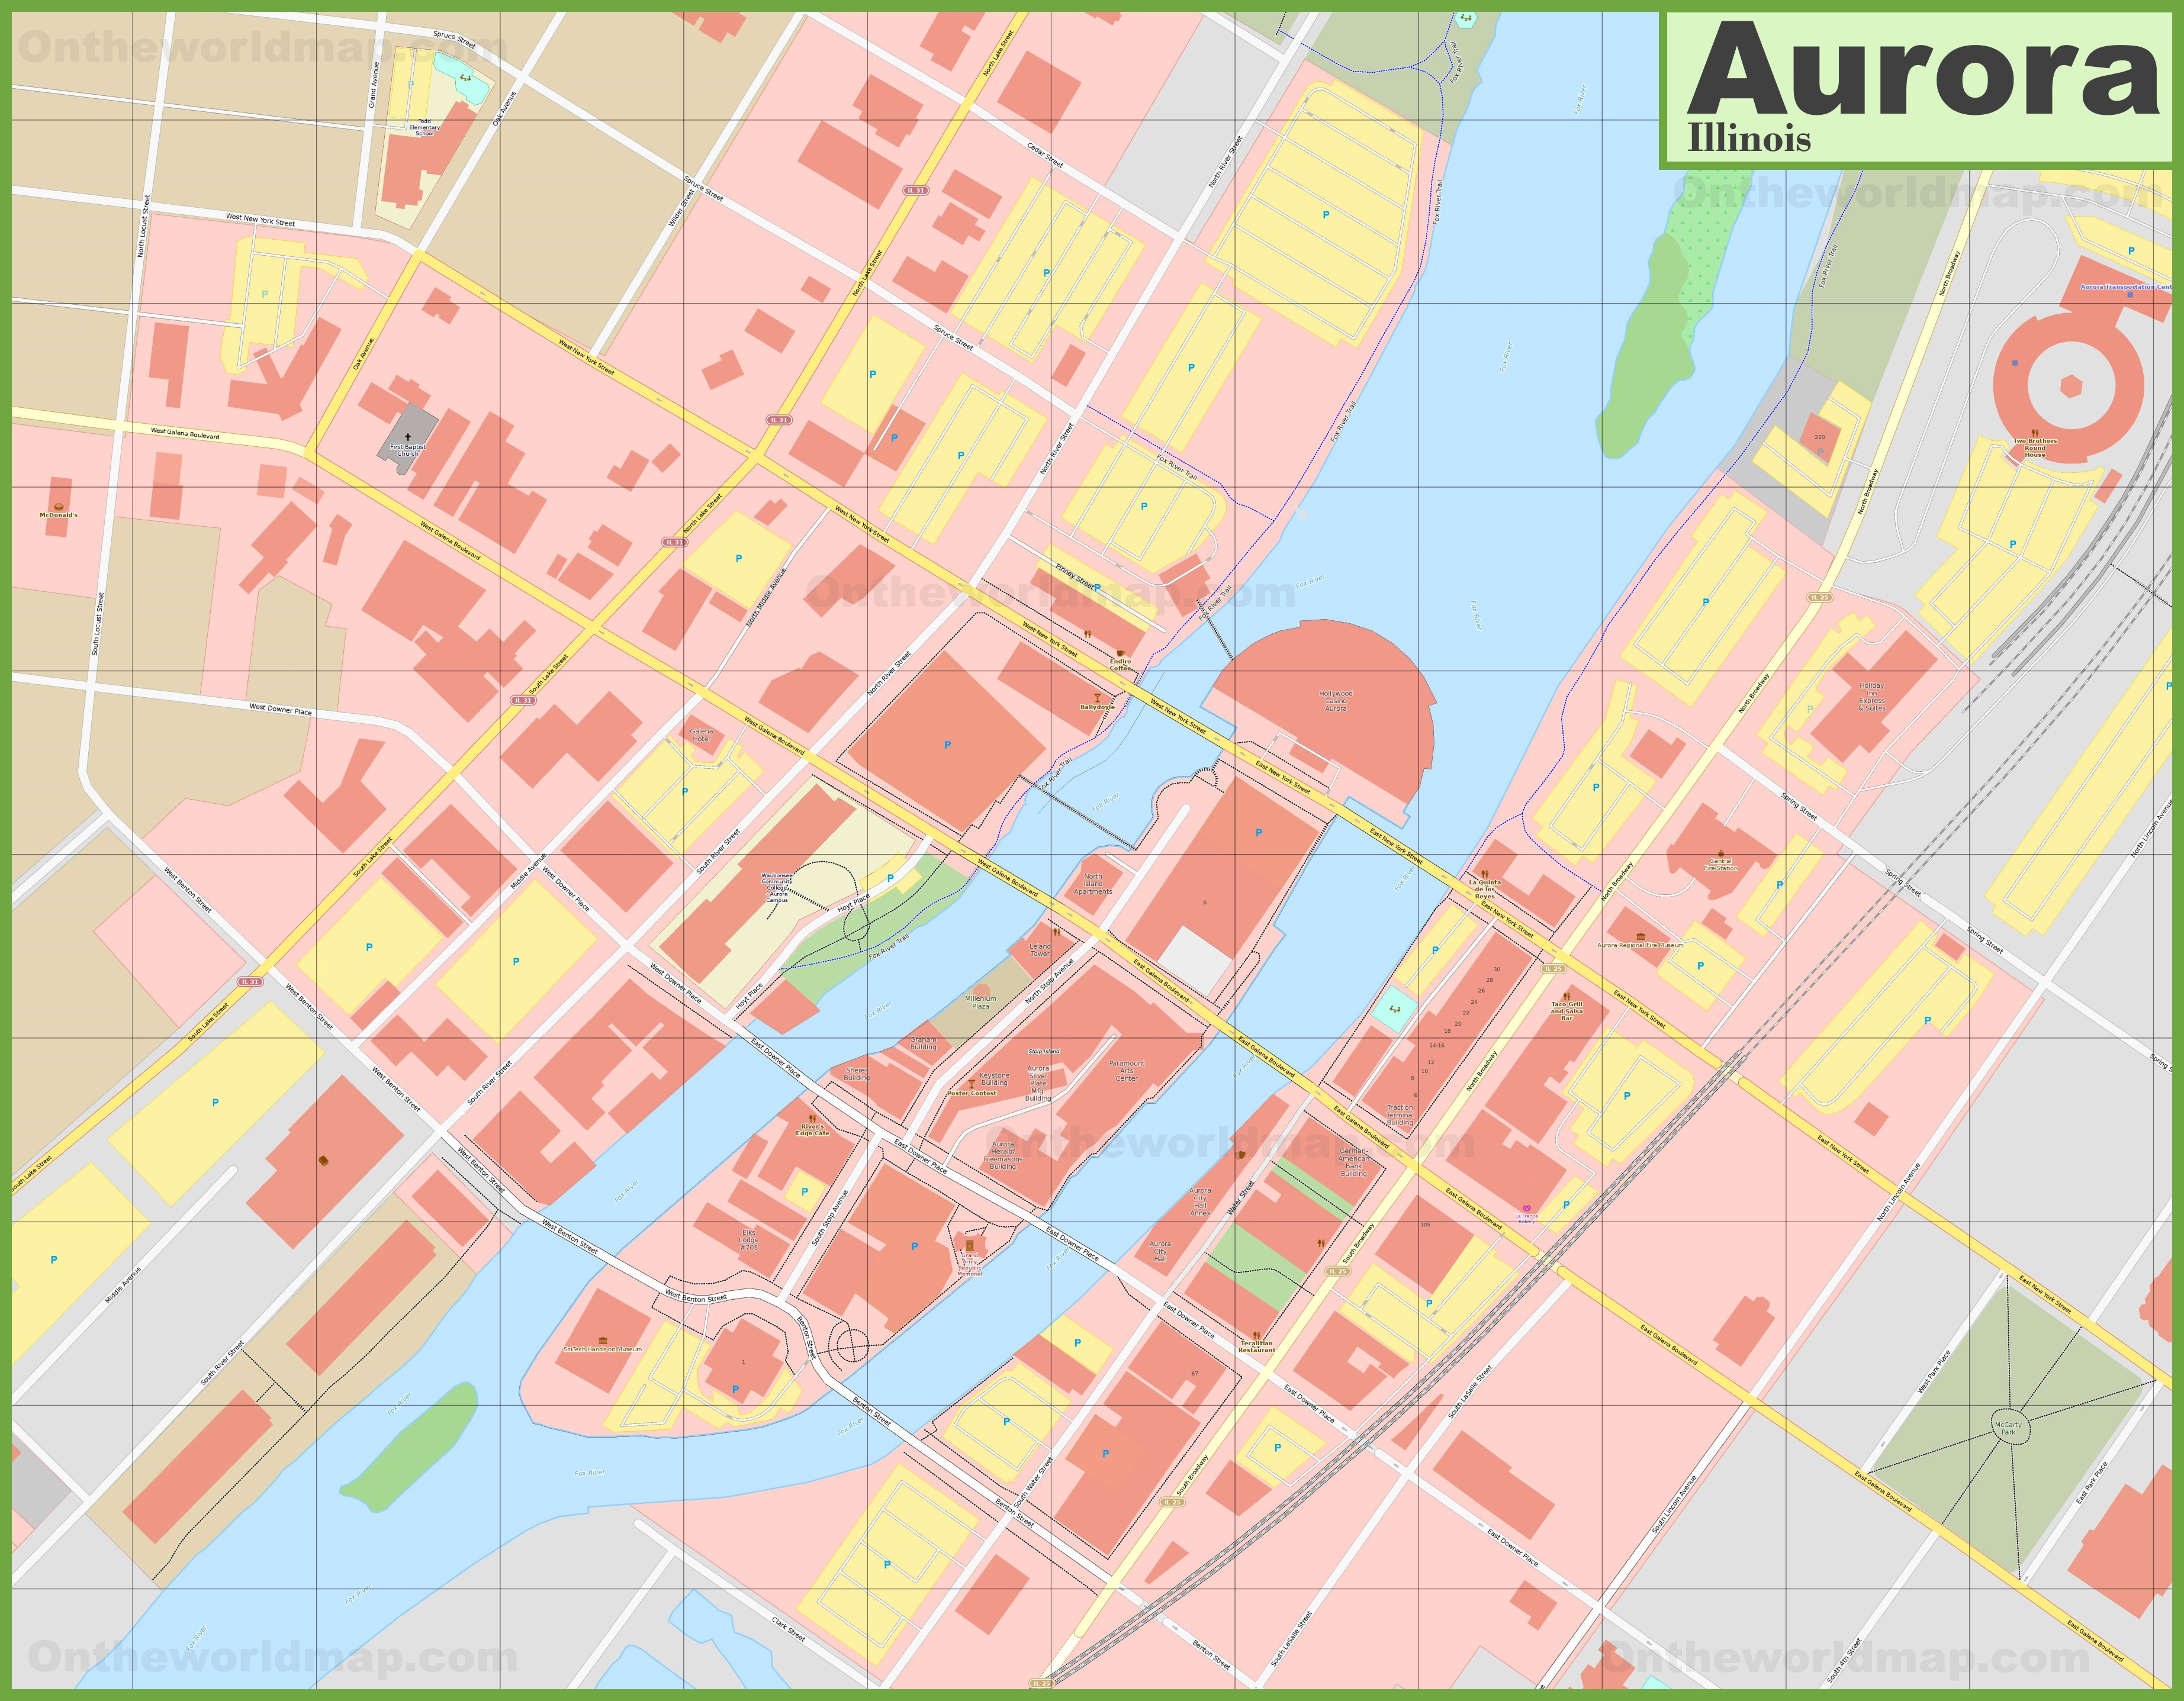 Aurora Illinois Downtown Map